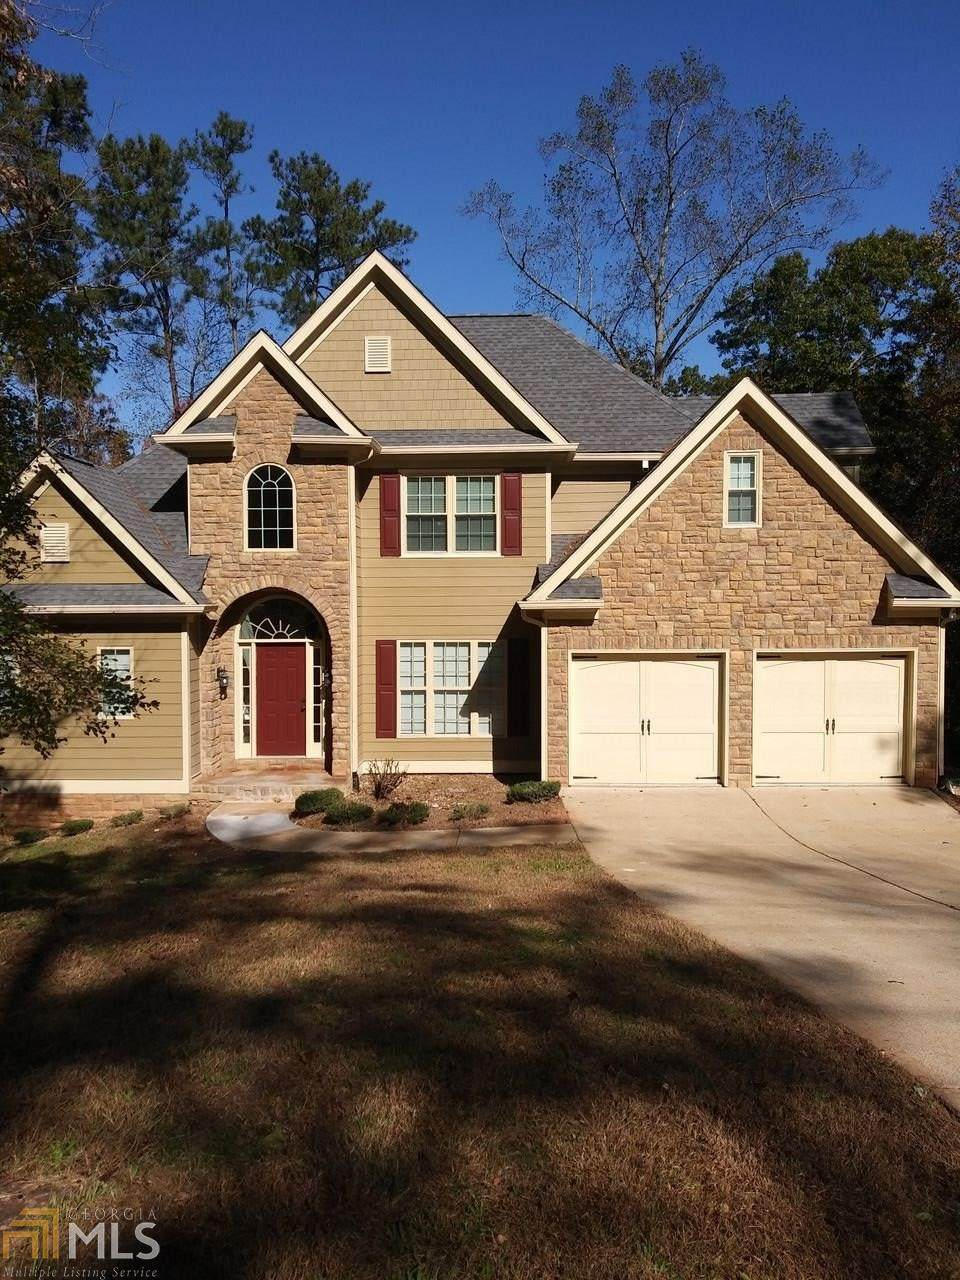 8039 Longleaf Dr - Photo 1